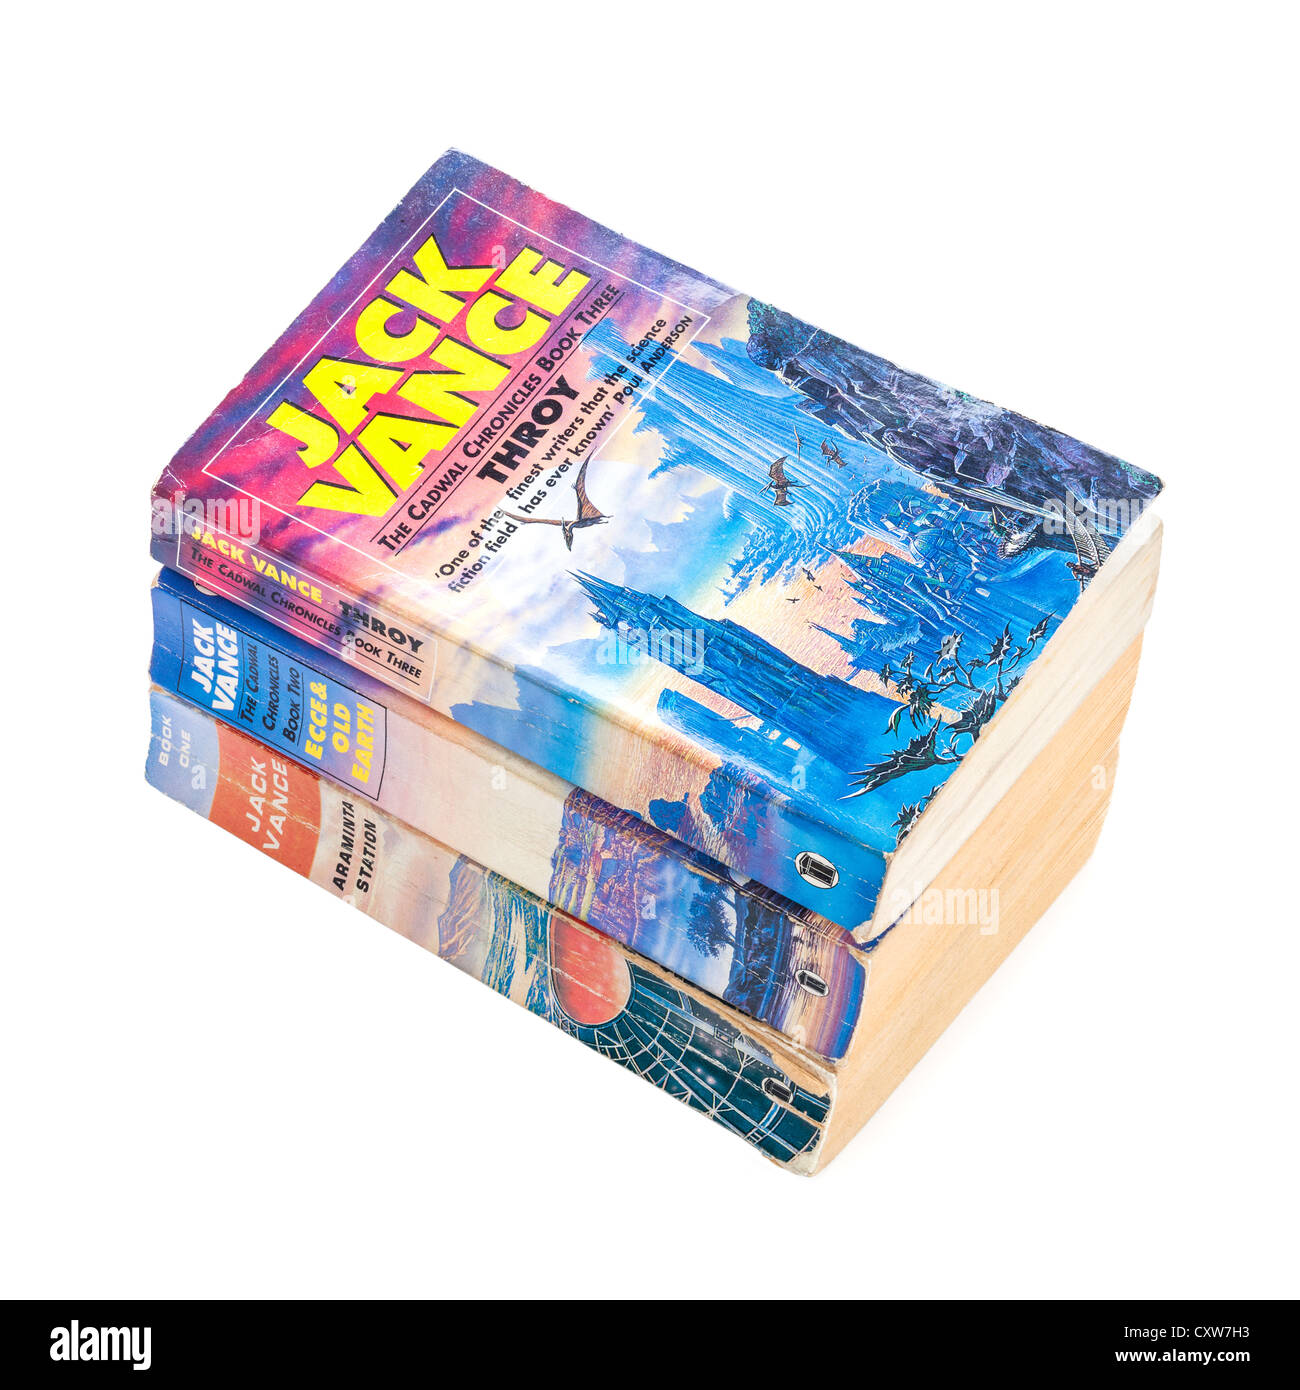 The Cadwal Chronicles trilogy by Jack Vance, stack of paperback books on white background. Focus stack, in focus - Stock Image